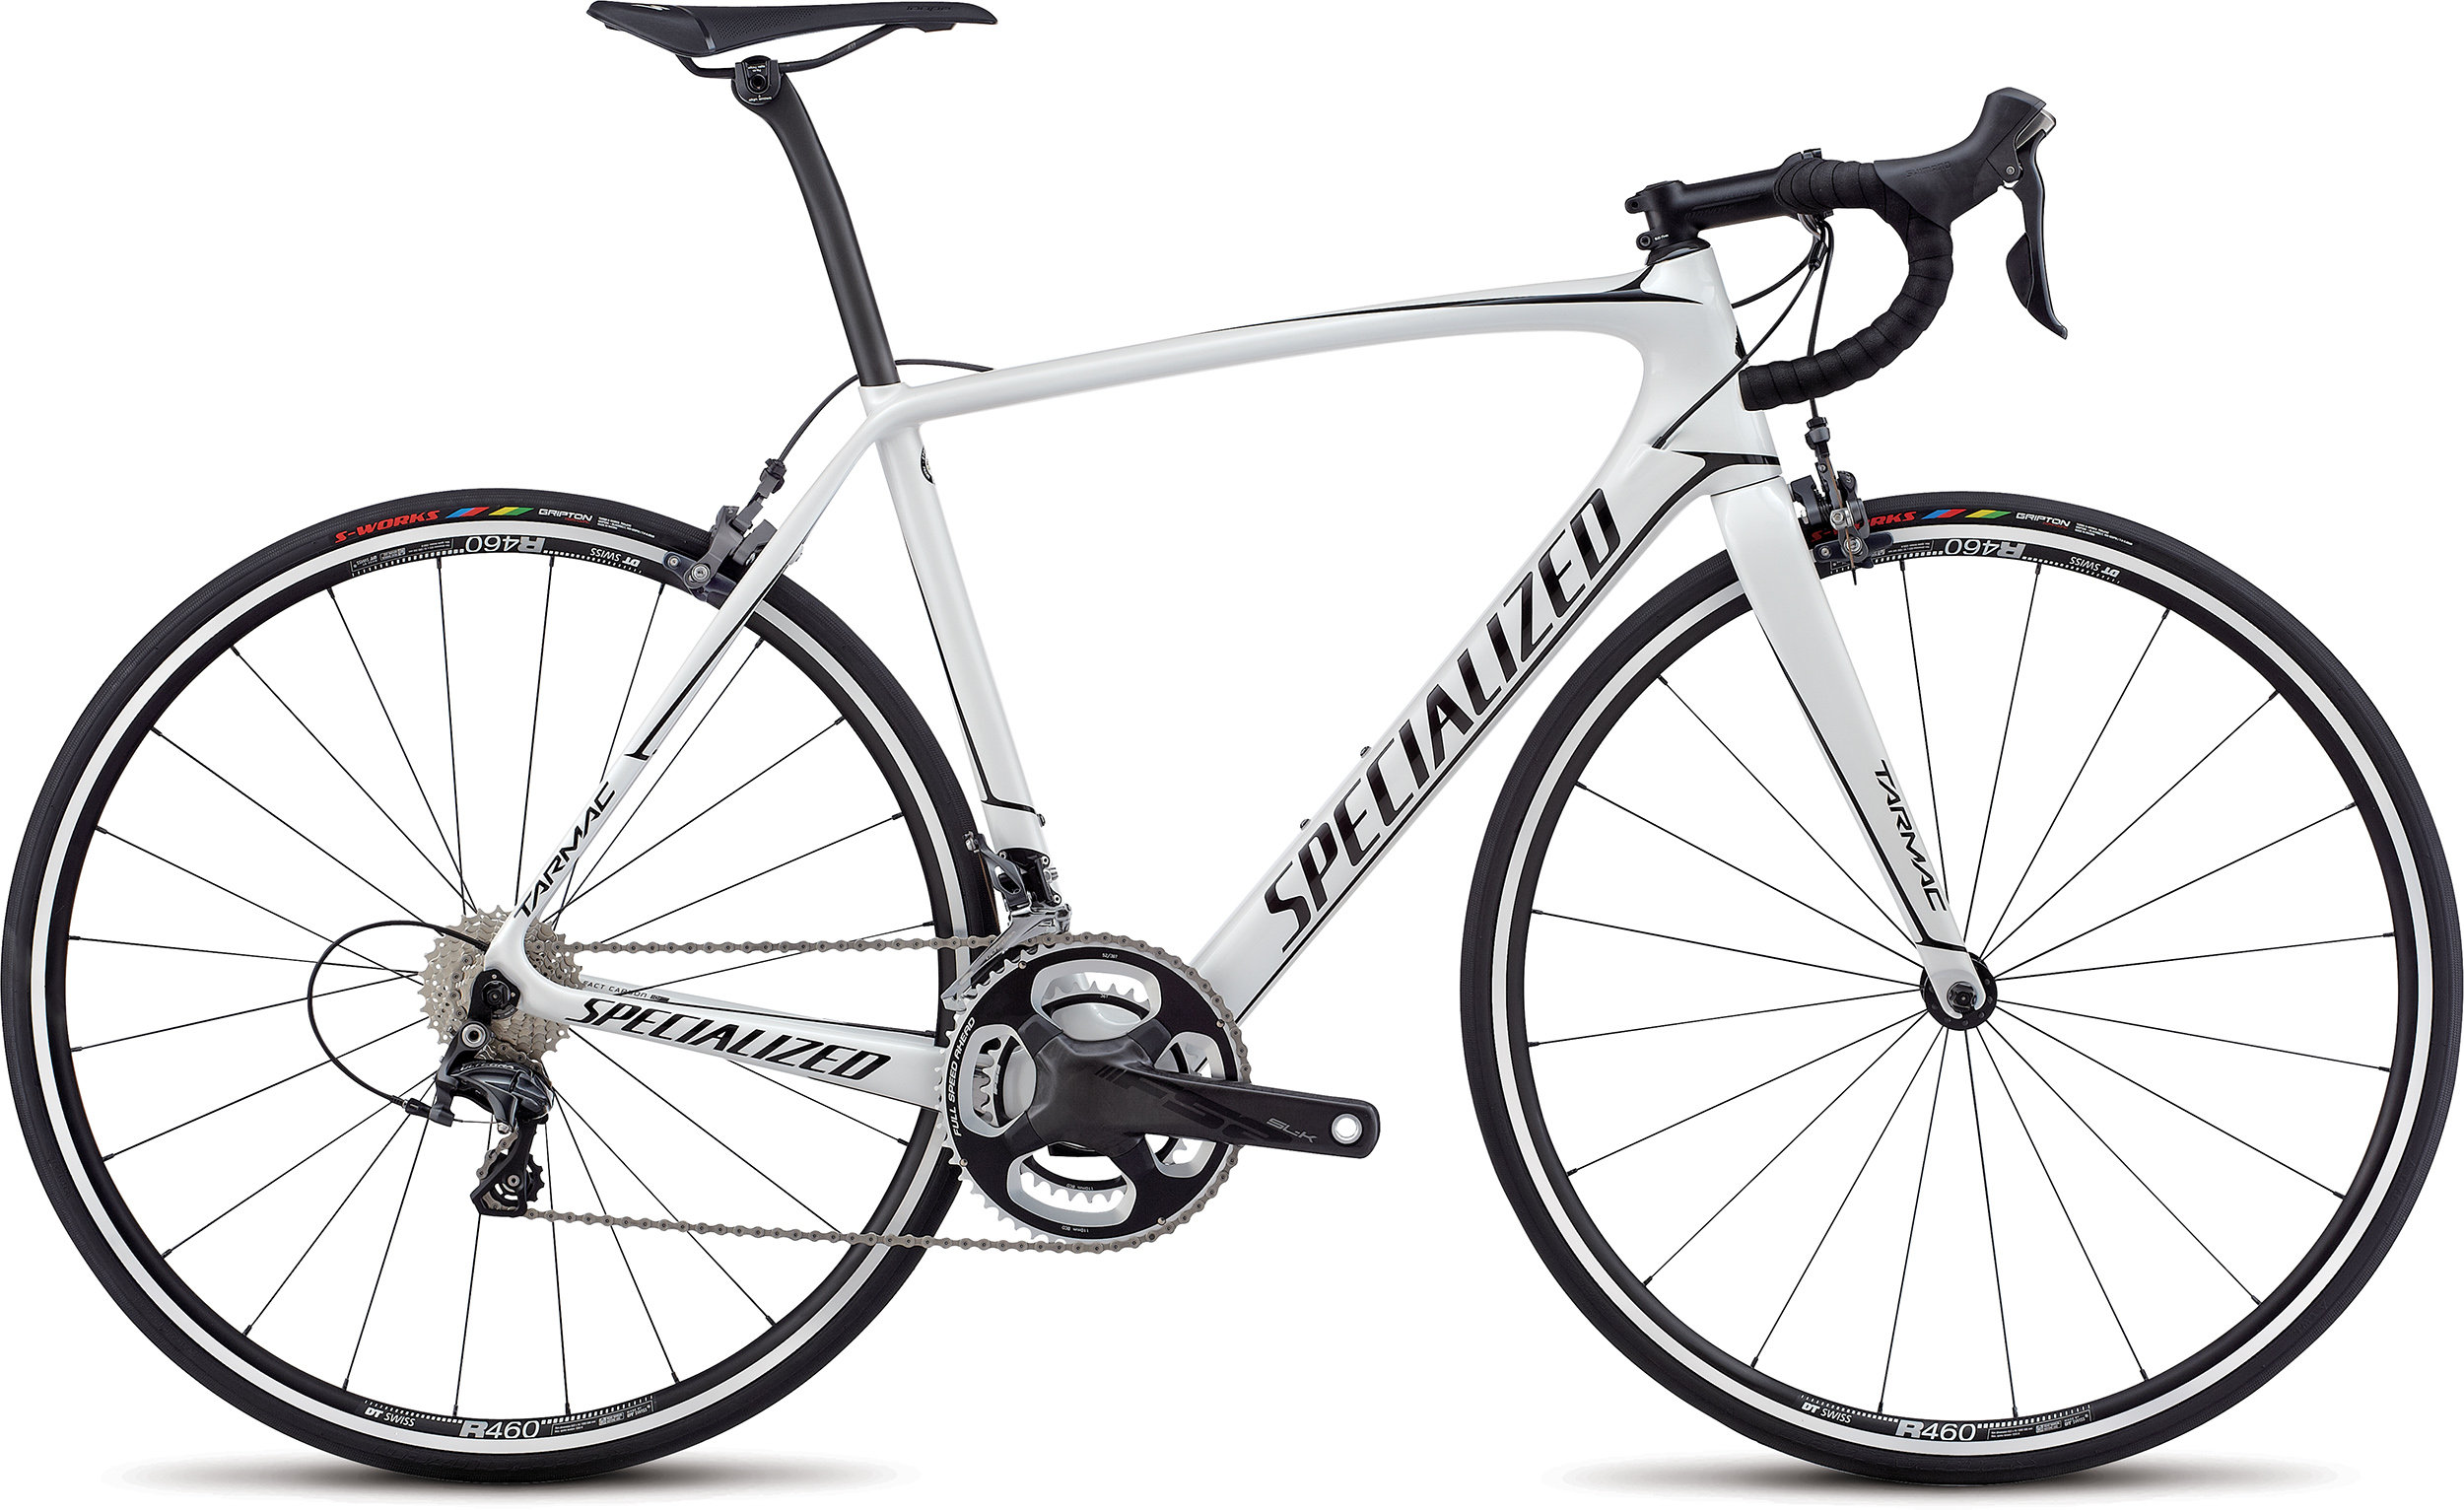 Specialized Tarmac Expert GLOSS METALLIC WHITE / TARMAC BLACK 54 - Specialized Tarmac Expert GLOSS METALLIC WHITE / TARMAC BLACK 54